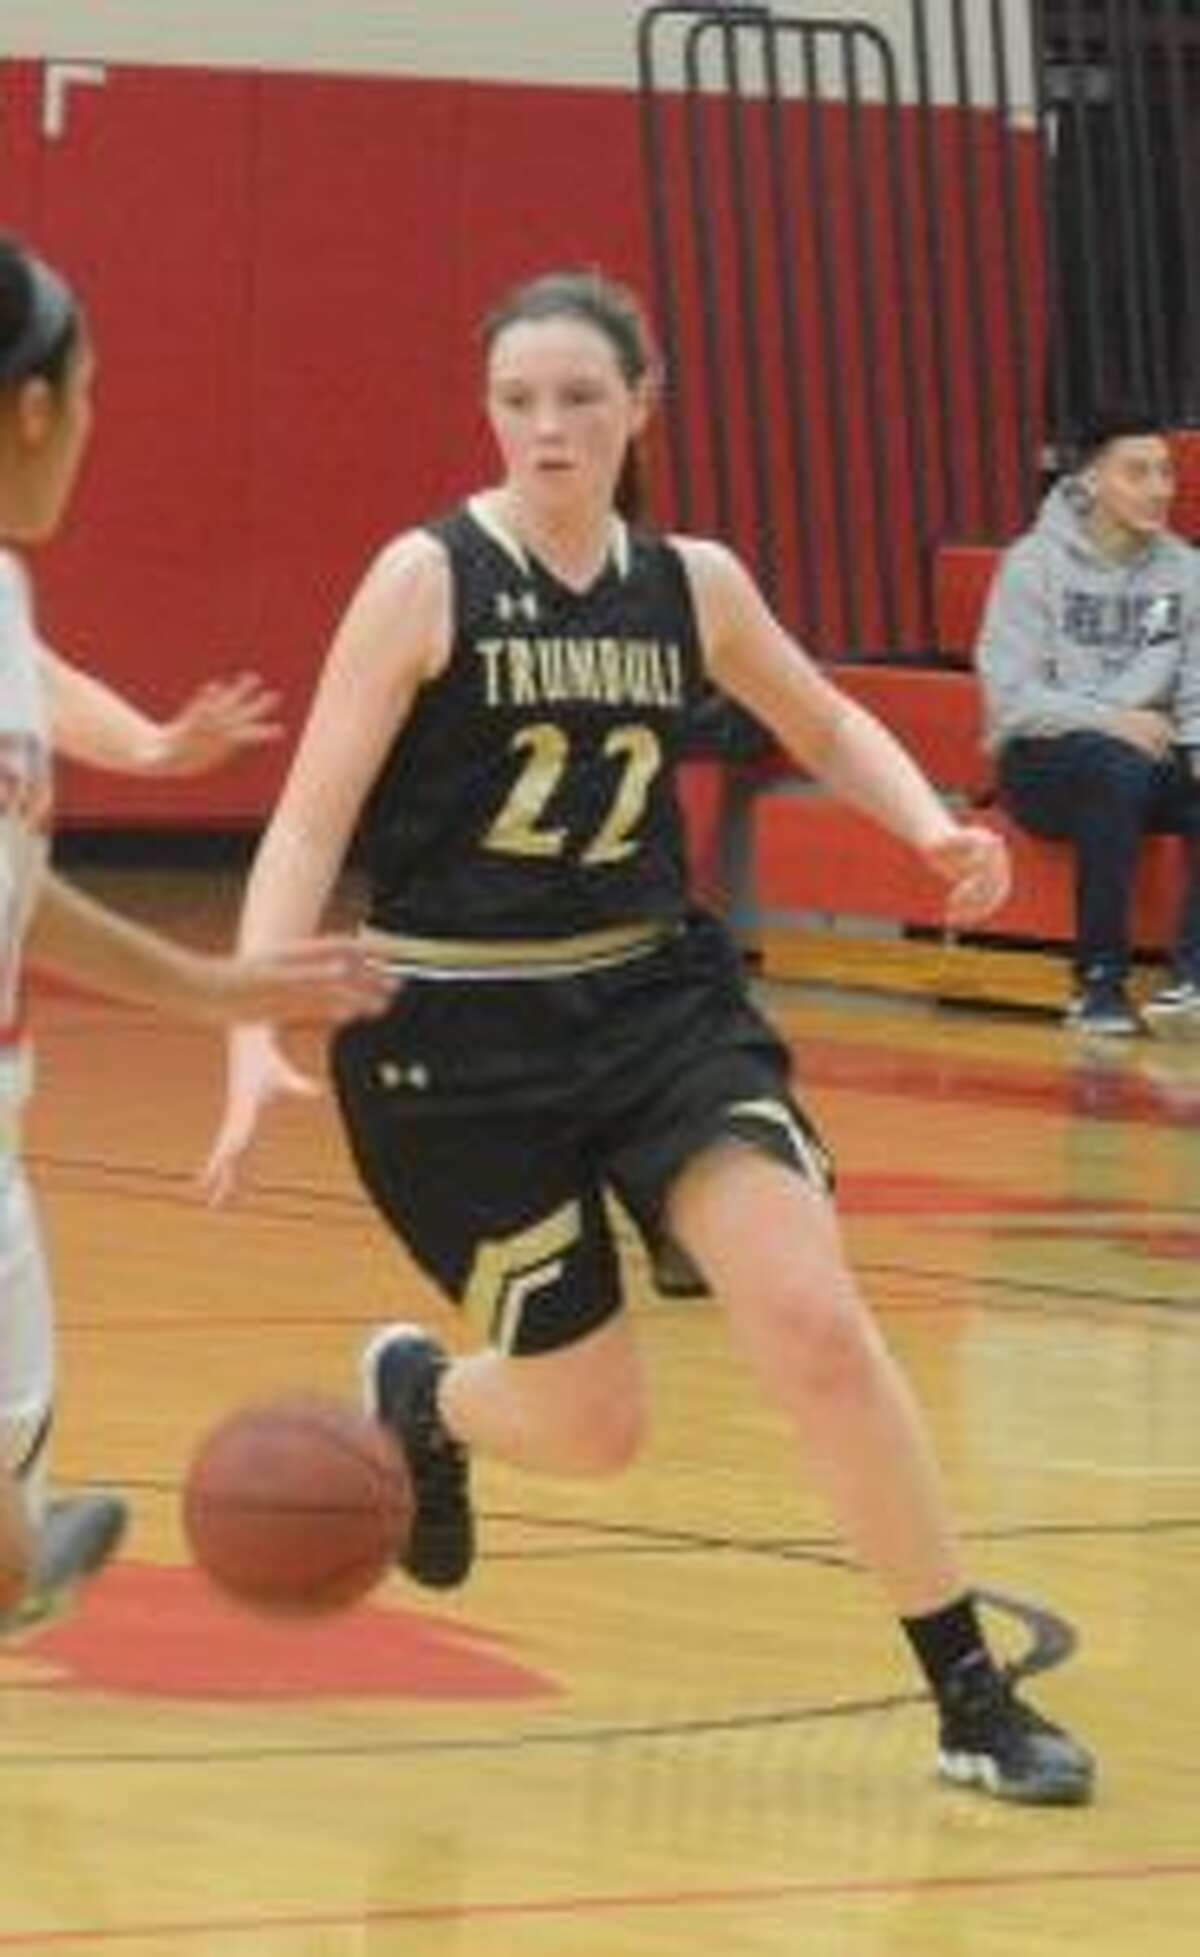 Trumbull's Aisling Maguire's basket gave the Eagles the lead with 30 seconds left.